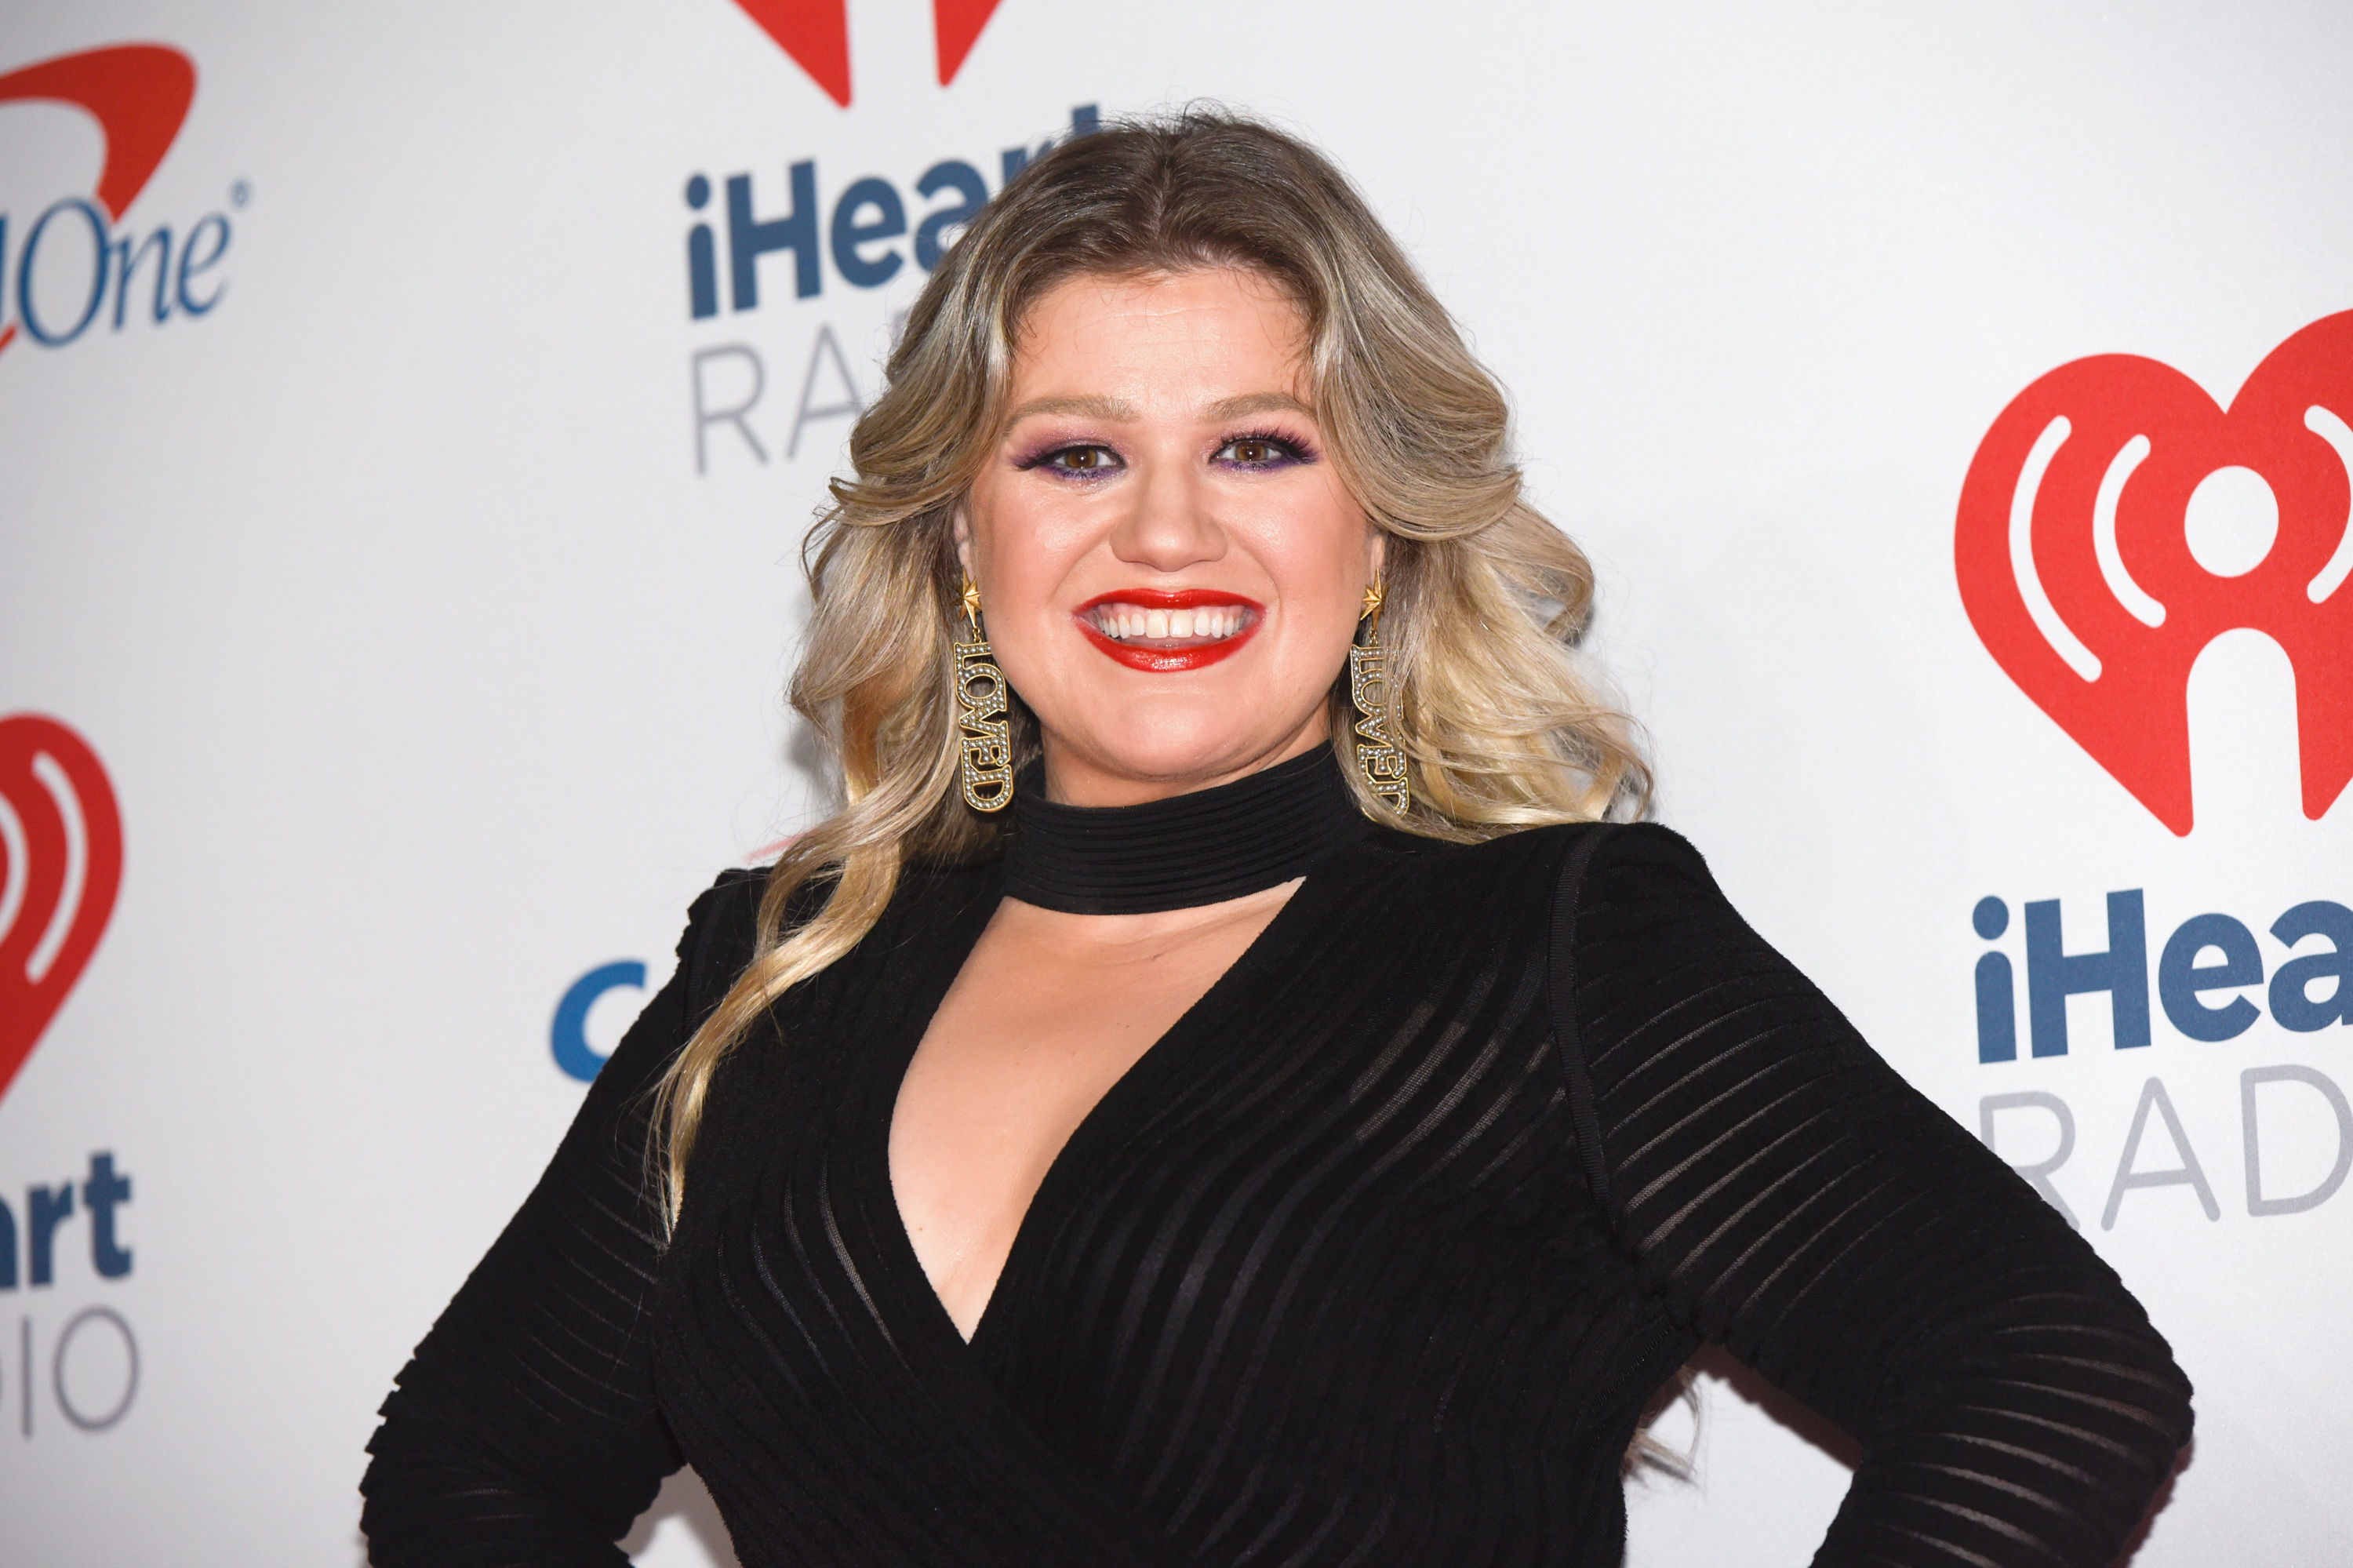 Kelly Clarkson Shares Her Jobs Before 'American Idol'